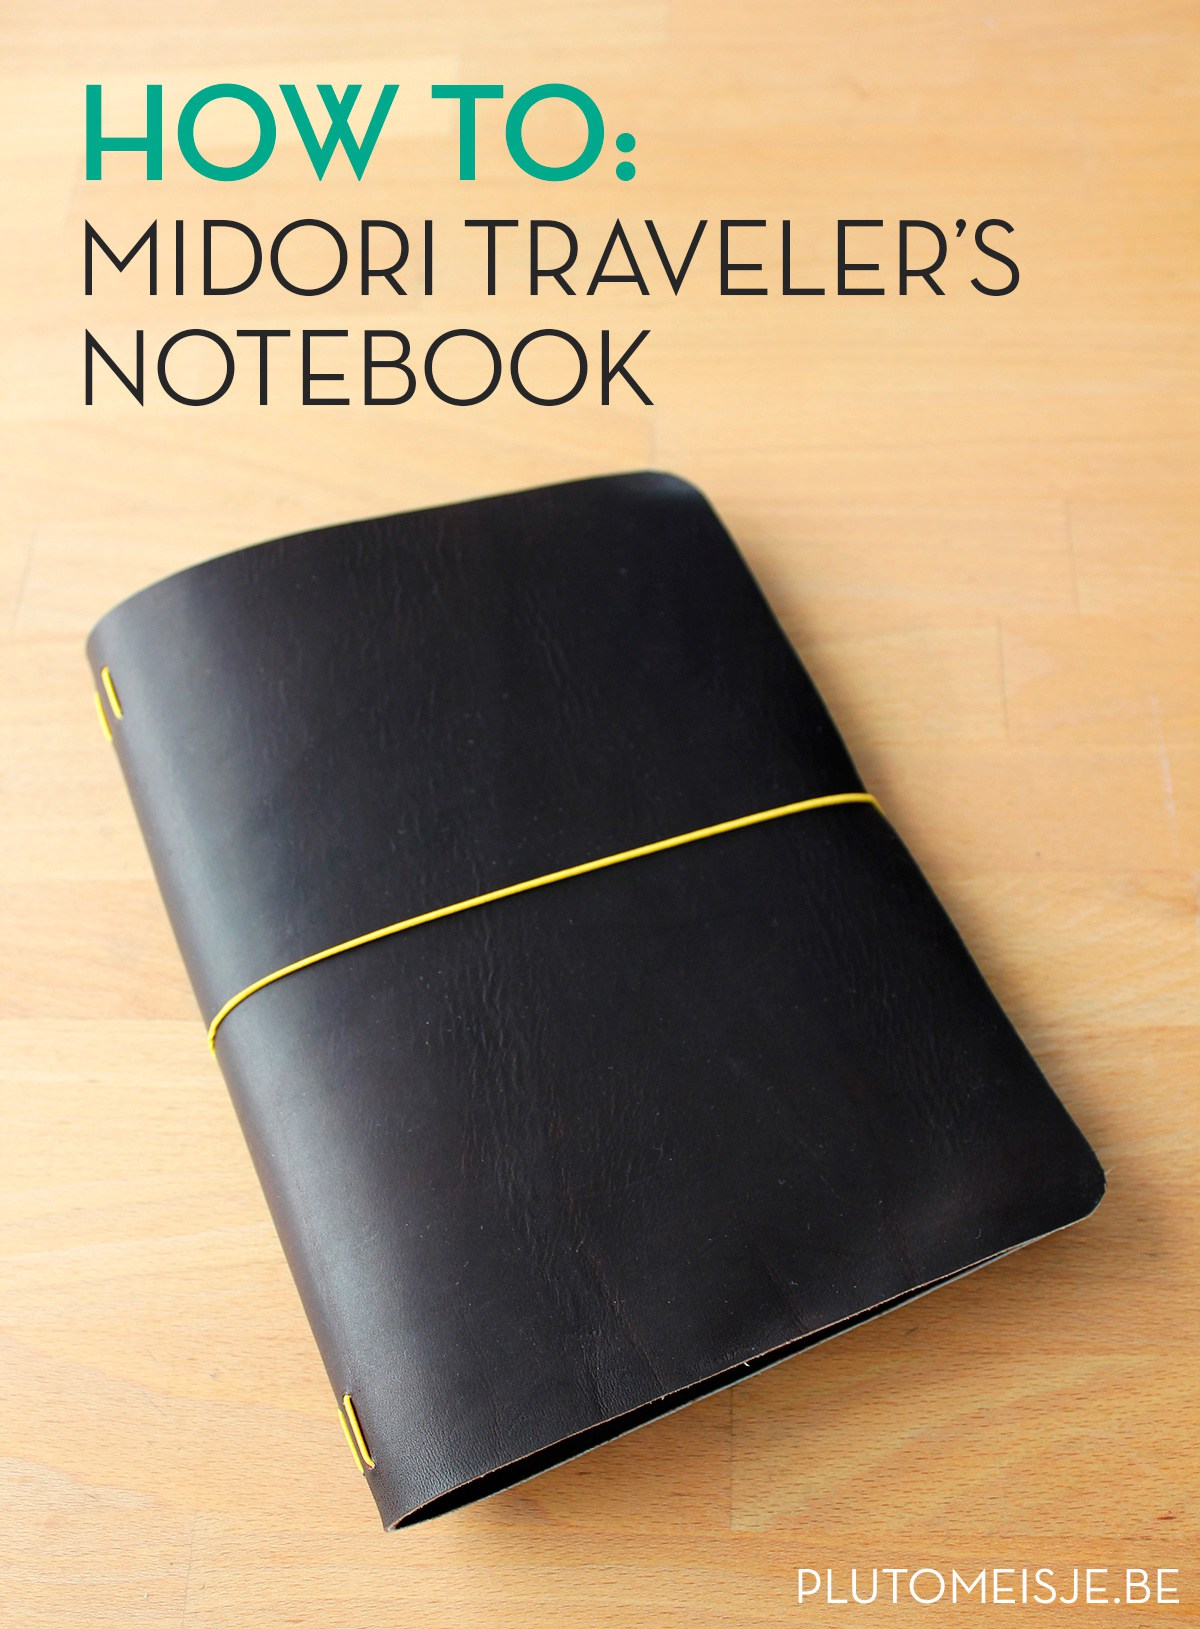 Making A Midori Traveler's Notebook Tutorial by Plutomeisje